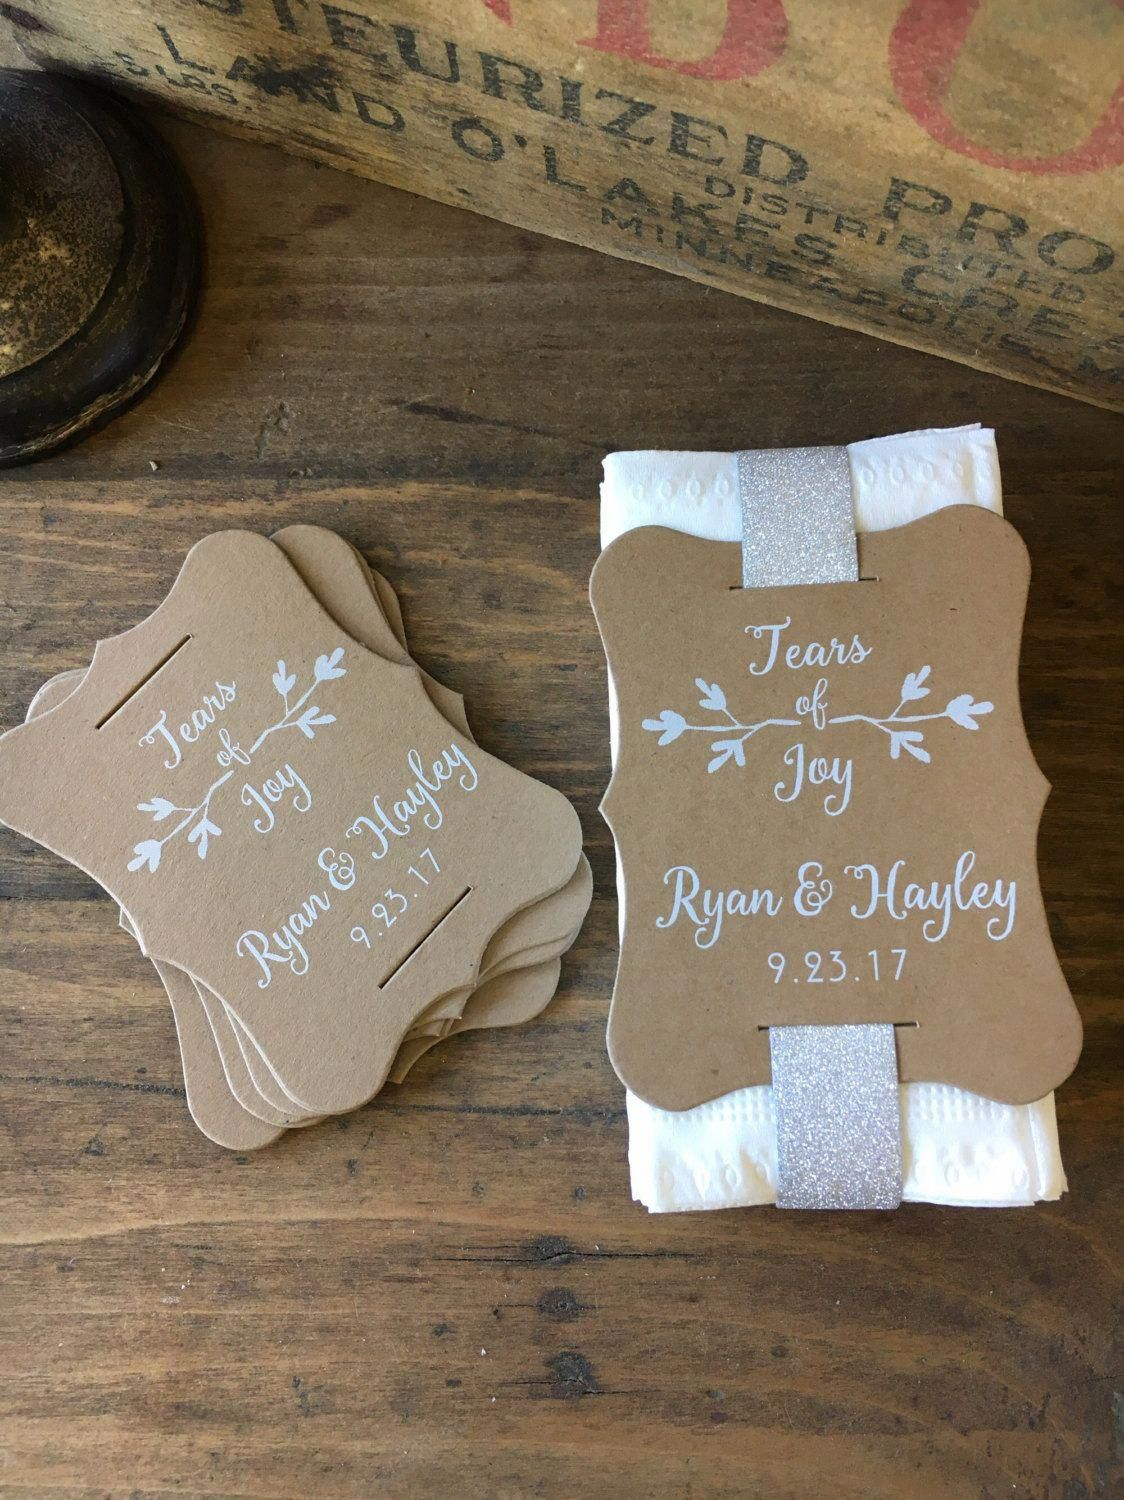 Tears Of Joy Wedding Tissue Tags Unique Custom Favors Personalized Ceremony Pack Label Set 24 By